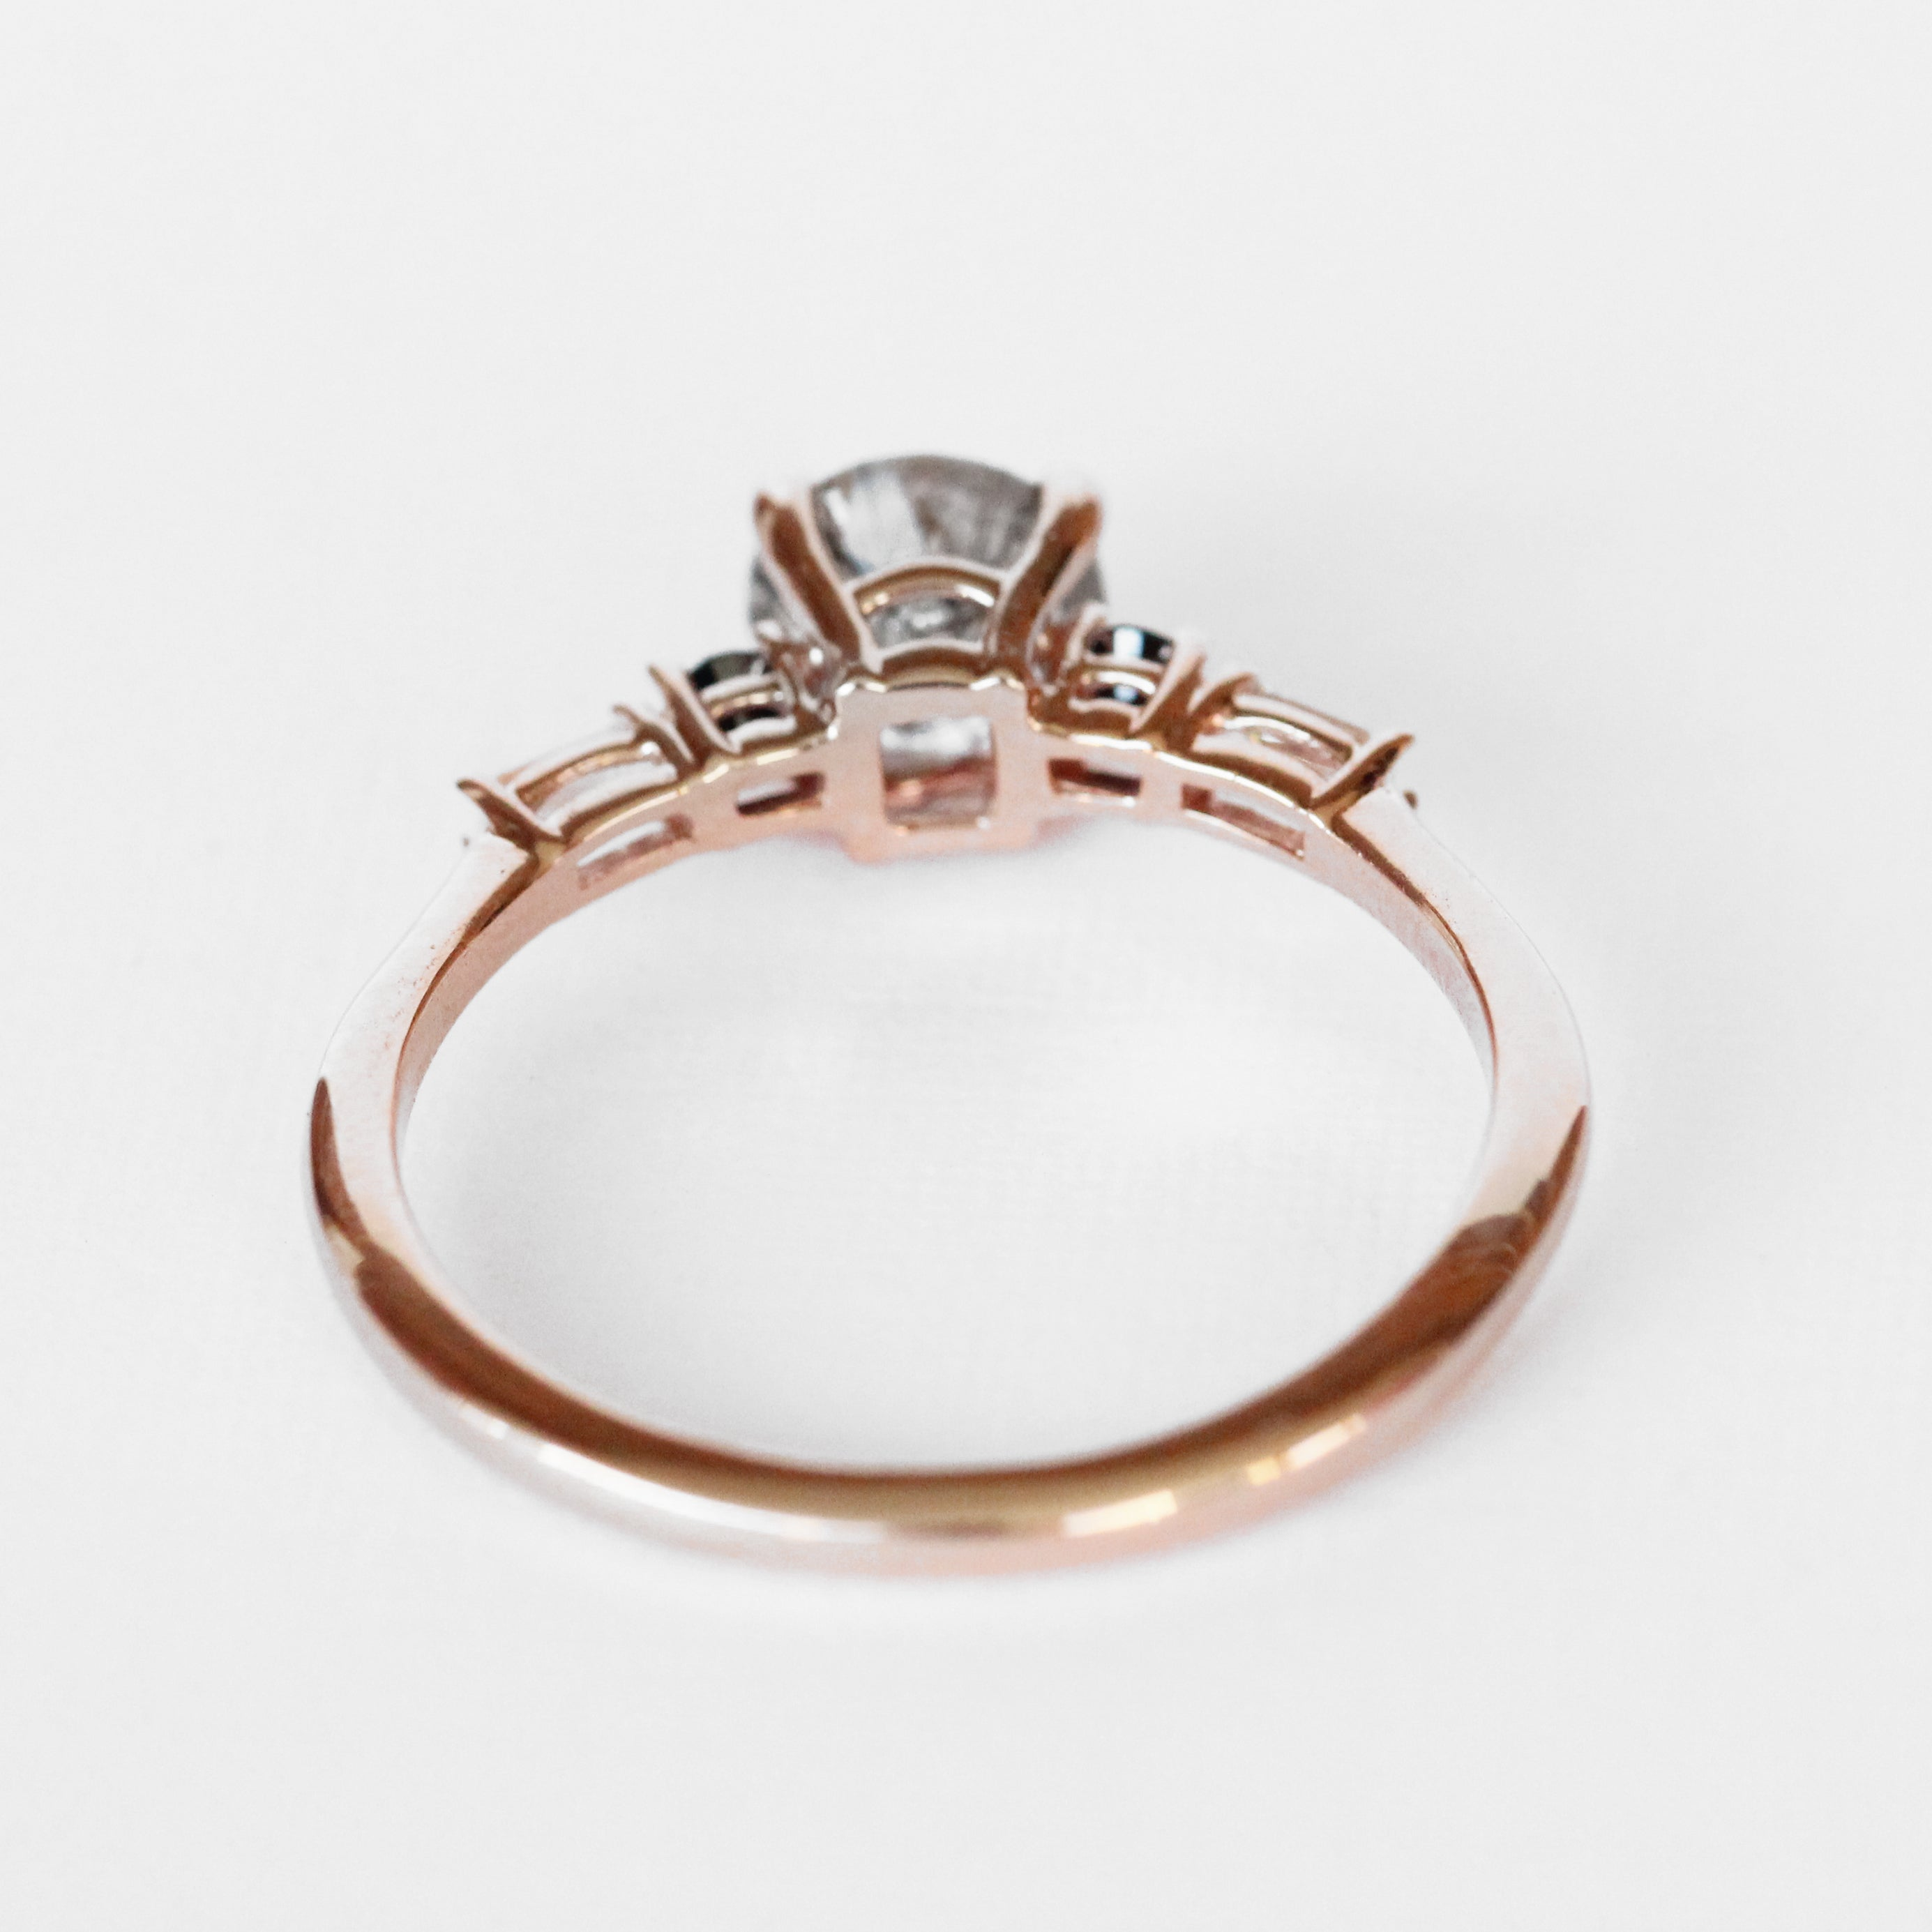 River Ring with a Rutilated Quartz and Diamond Accents in 10k Rose Gold - Ready to Size and Ship